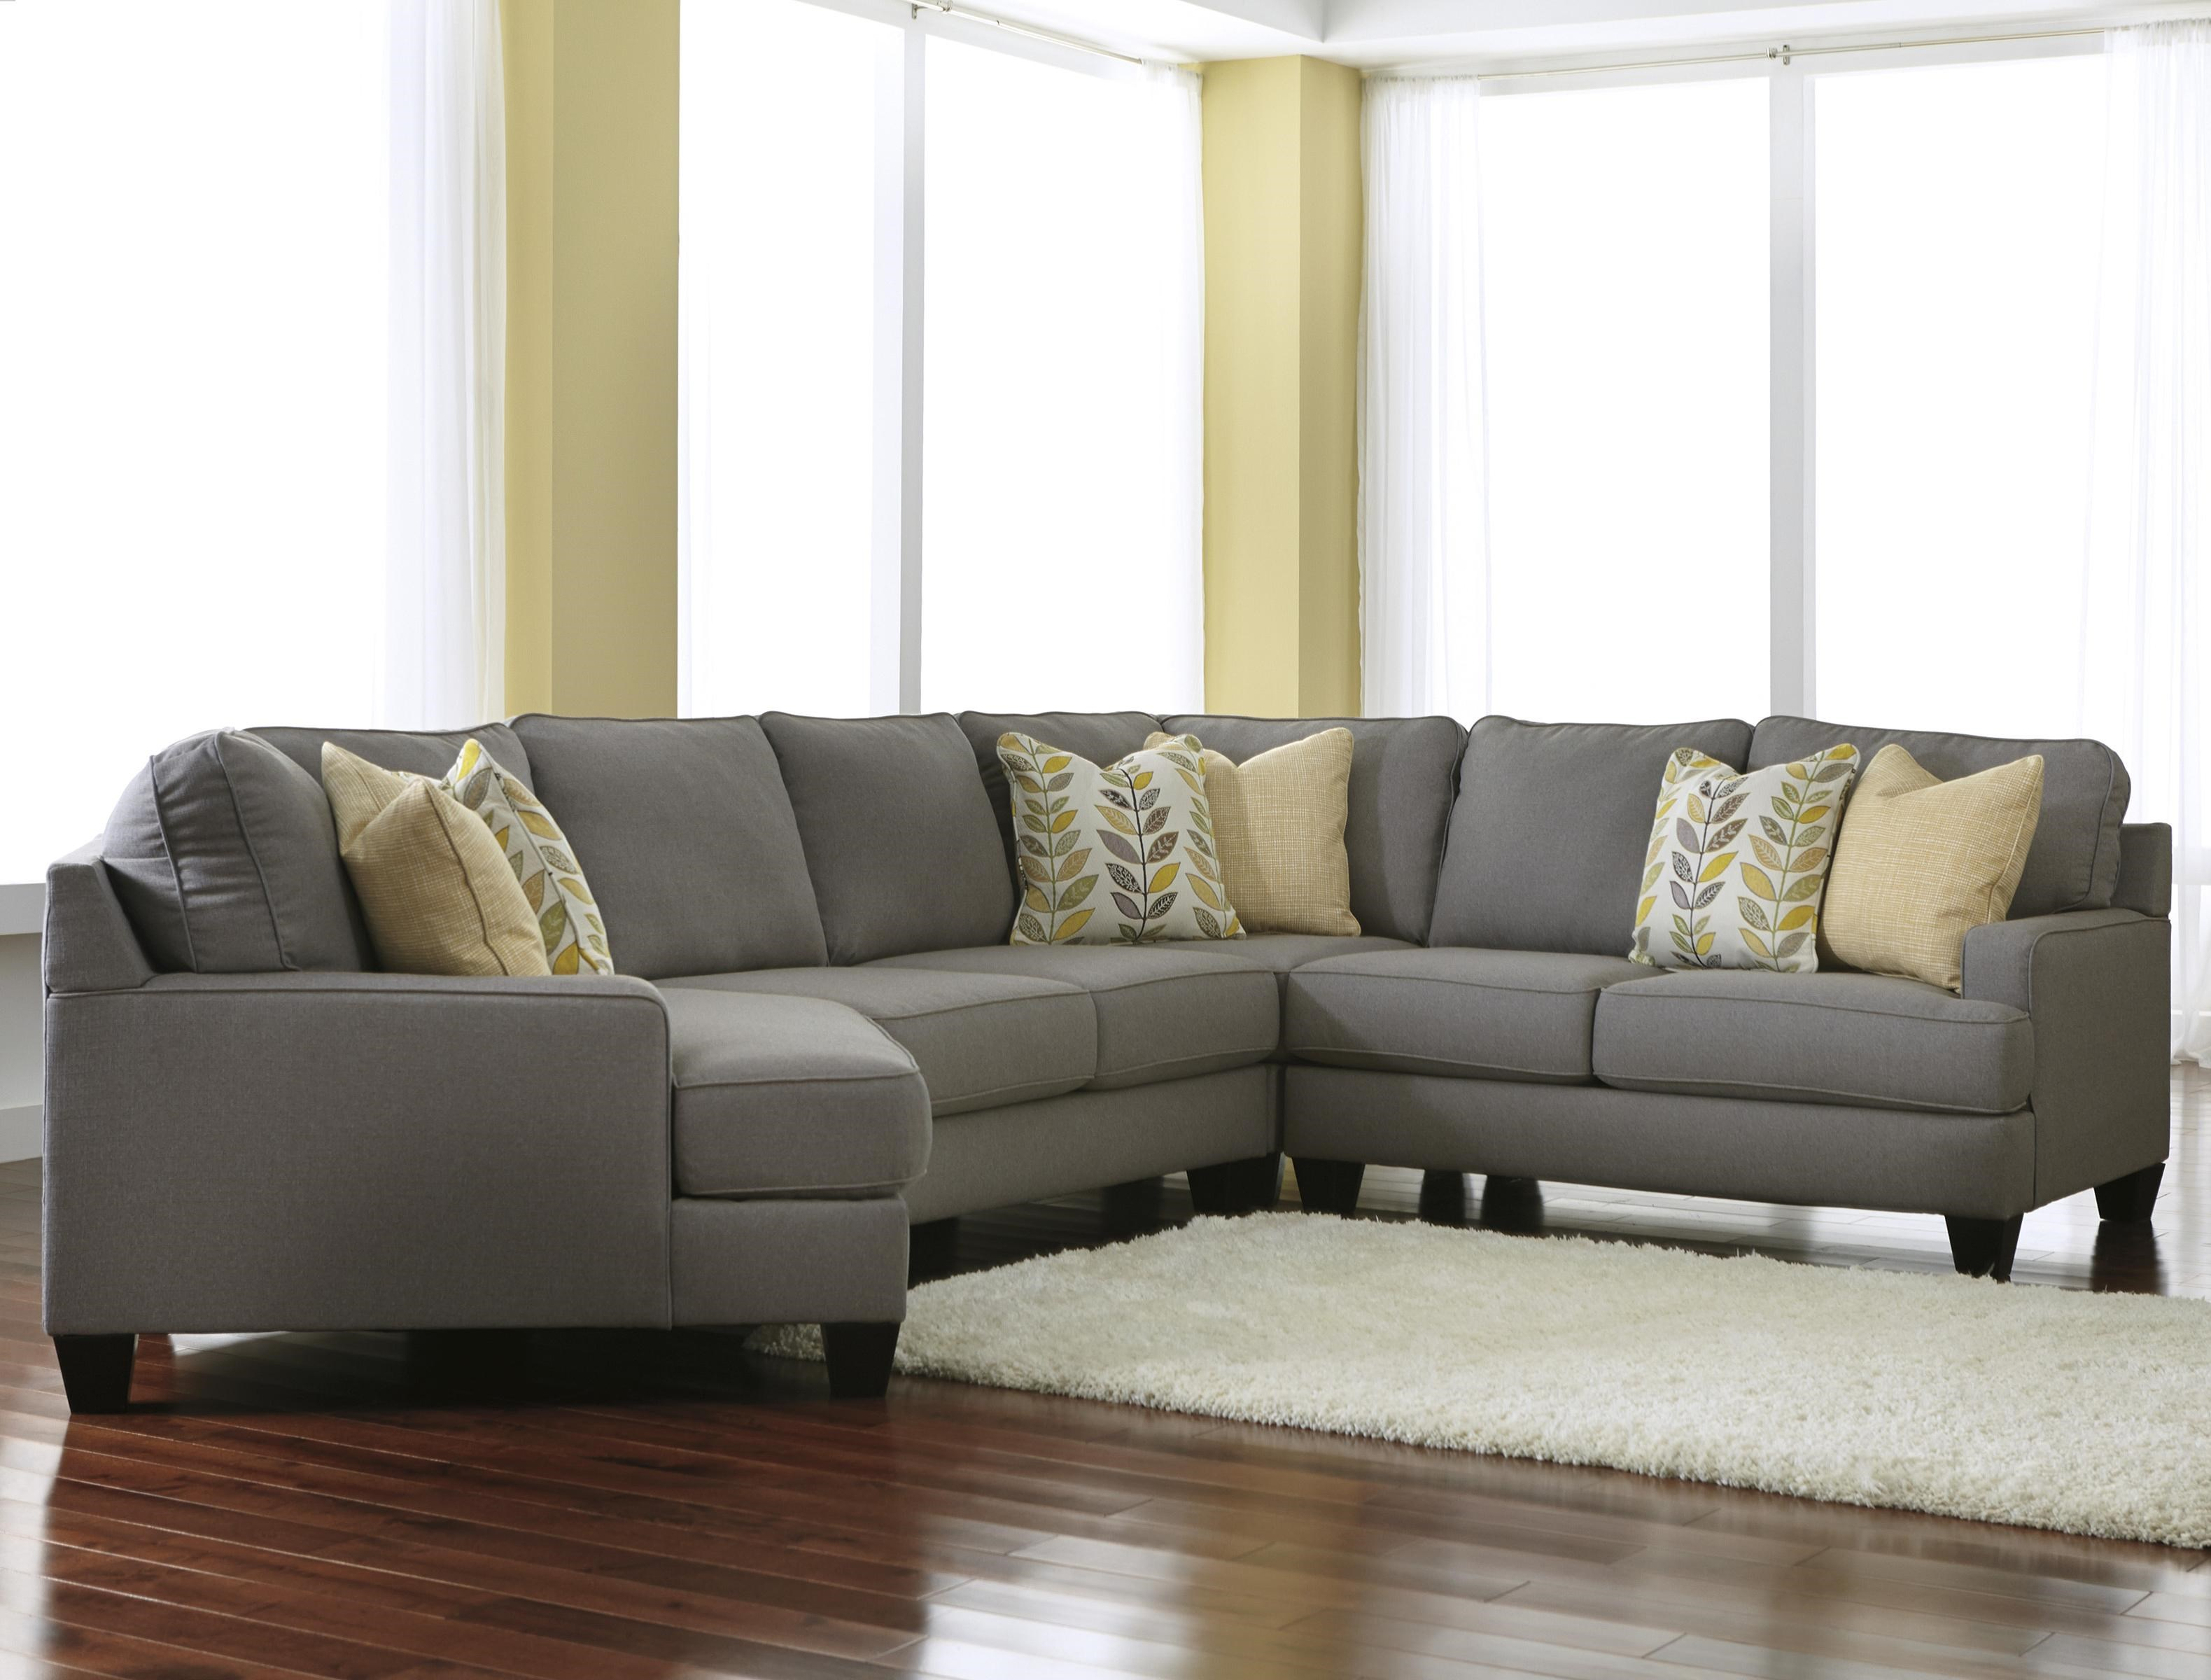 Chamberly - Alloy 4-Piece Sectional Sofa with Left Cuddler